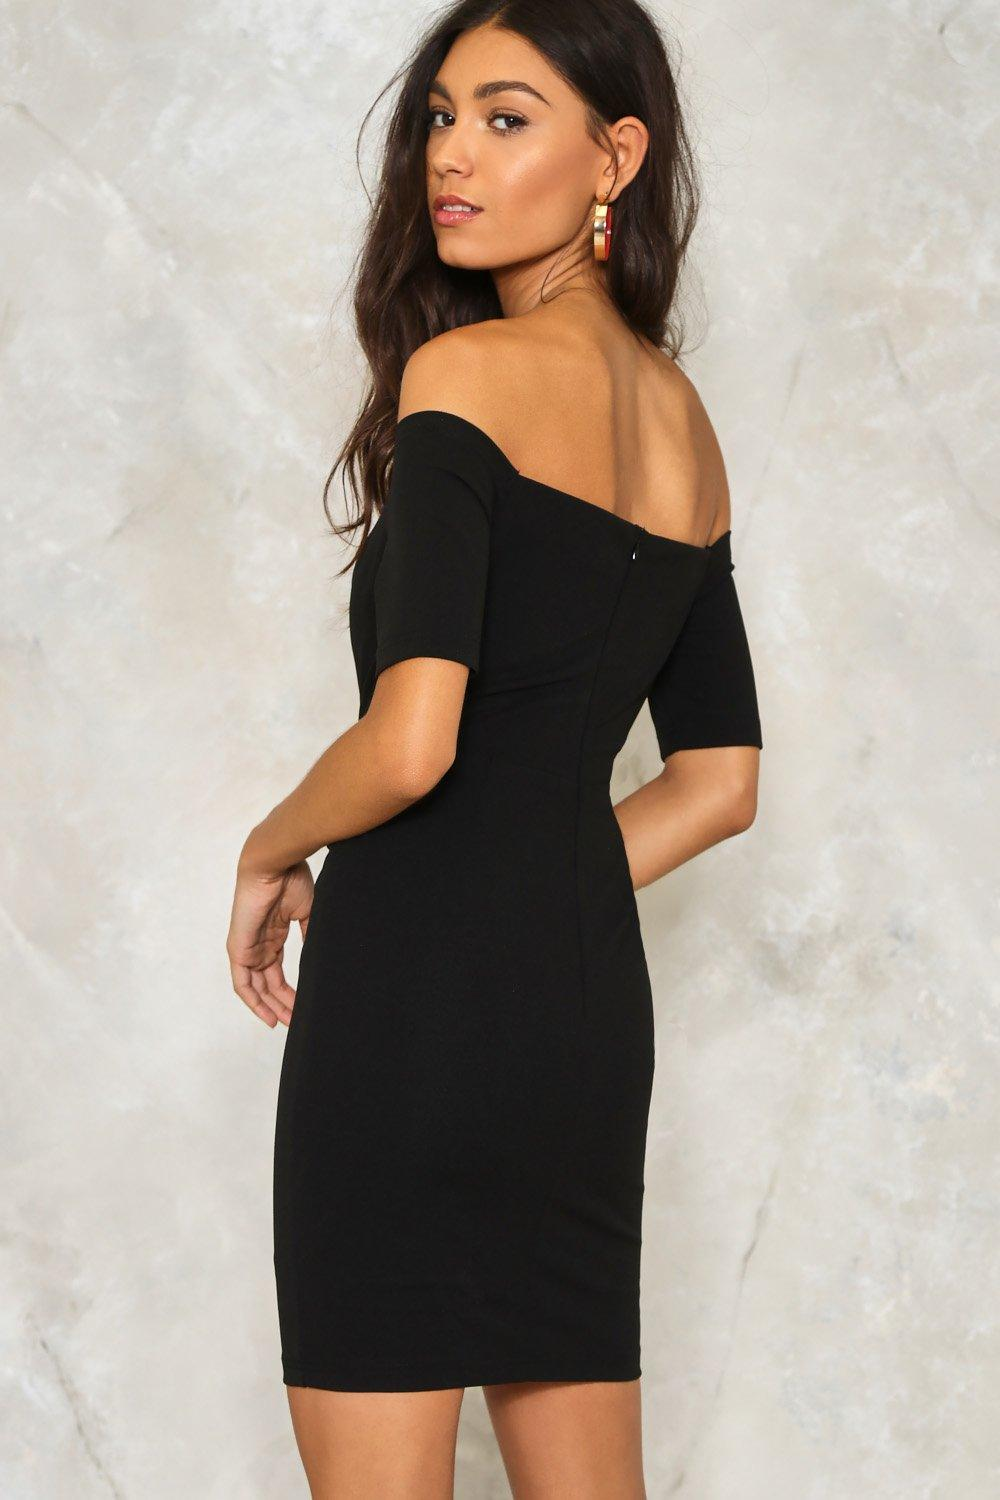 71d58f3d66ae4 One Way or Another Off-the-Shoulder Dress